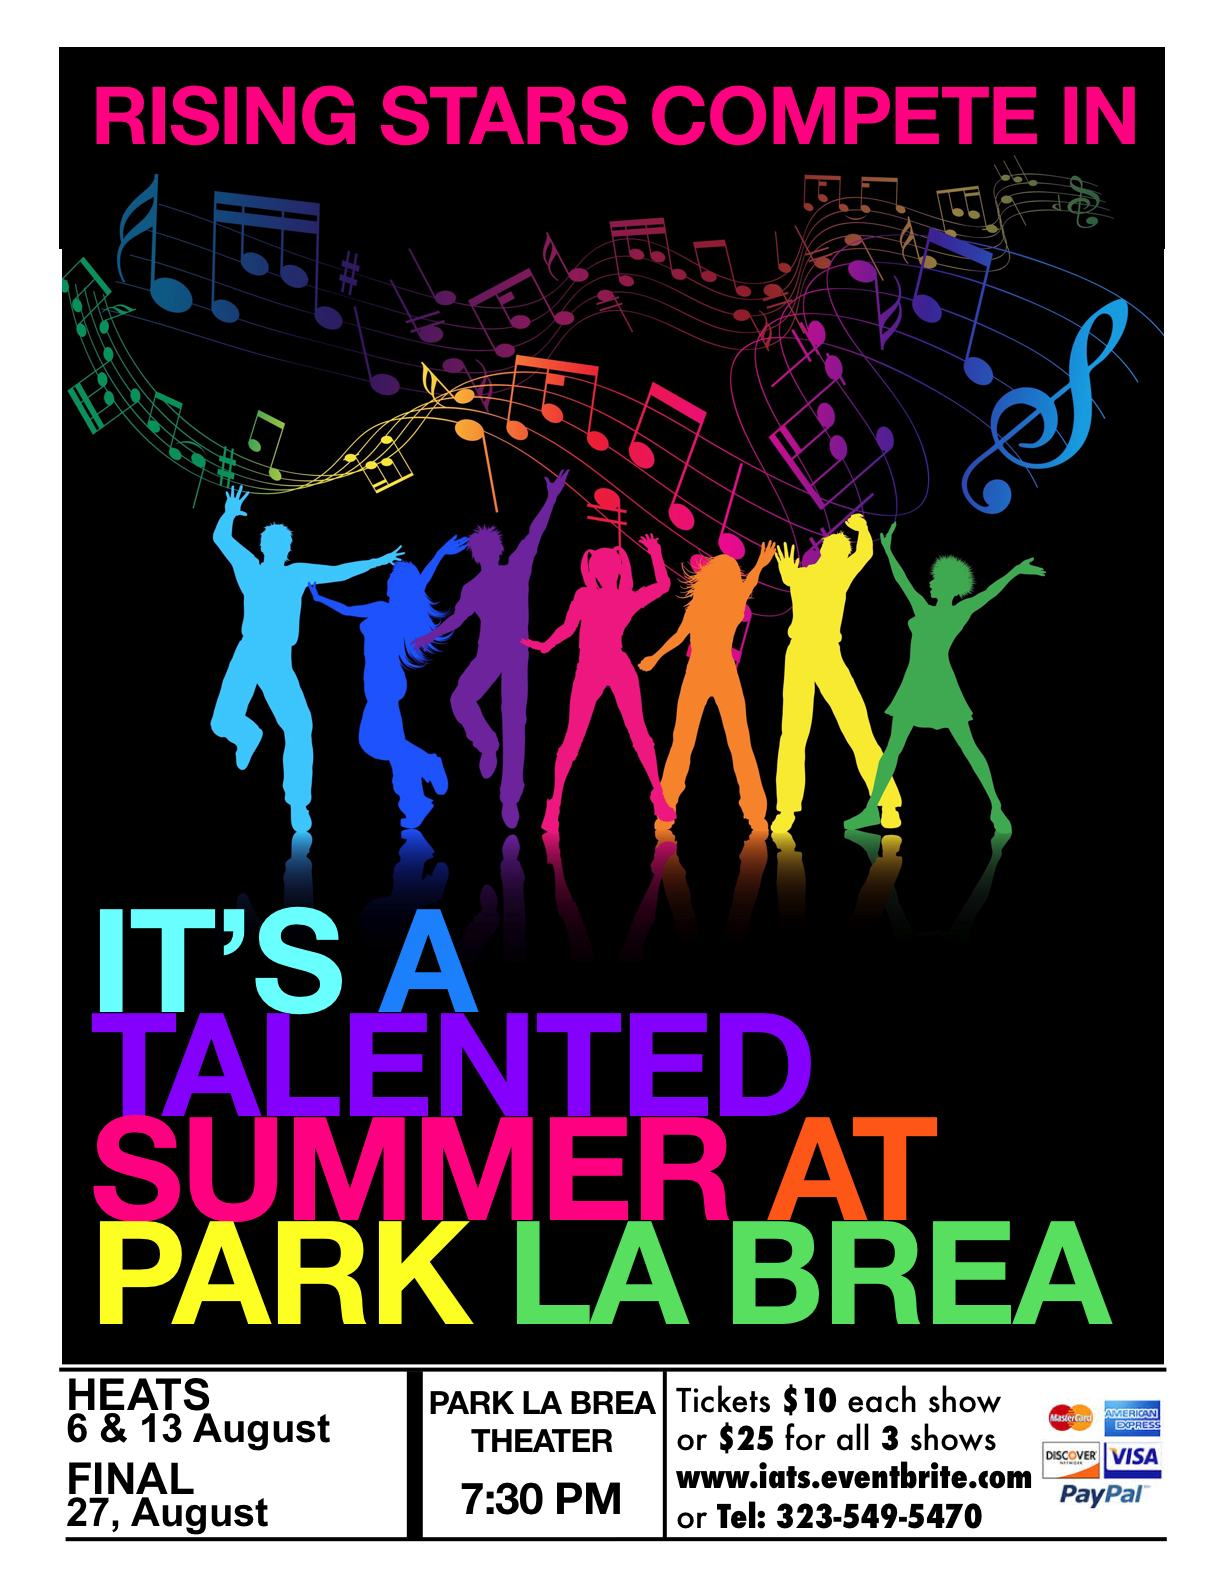 http://www.eventbrite.com/e/its-a-talented-summer-at-park-la-brea-2014-tickets-12335881955